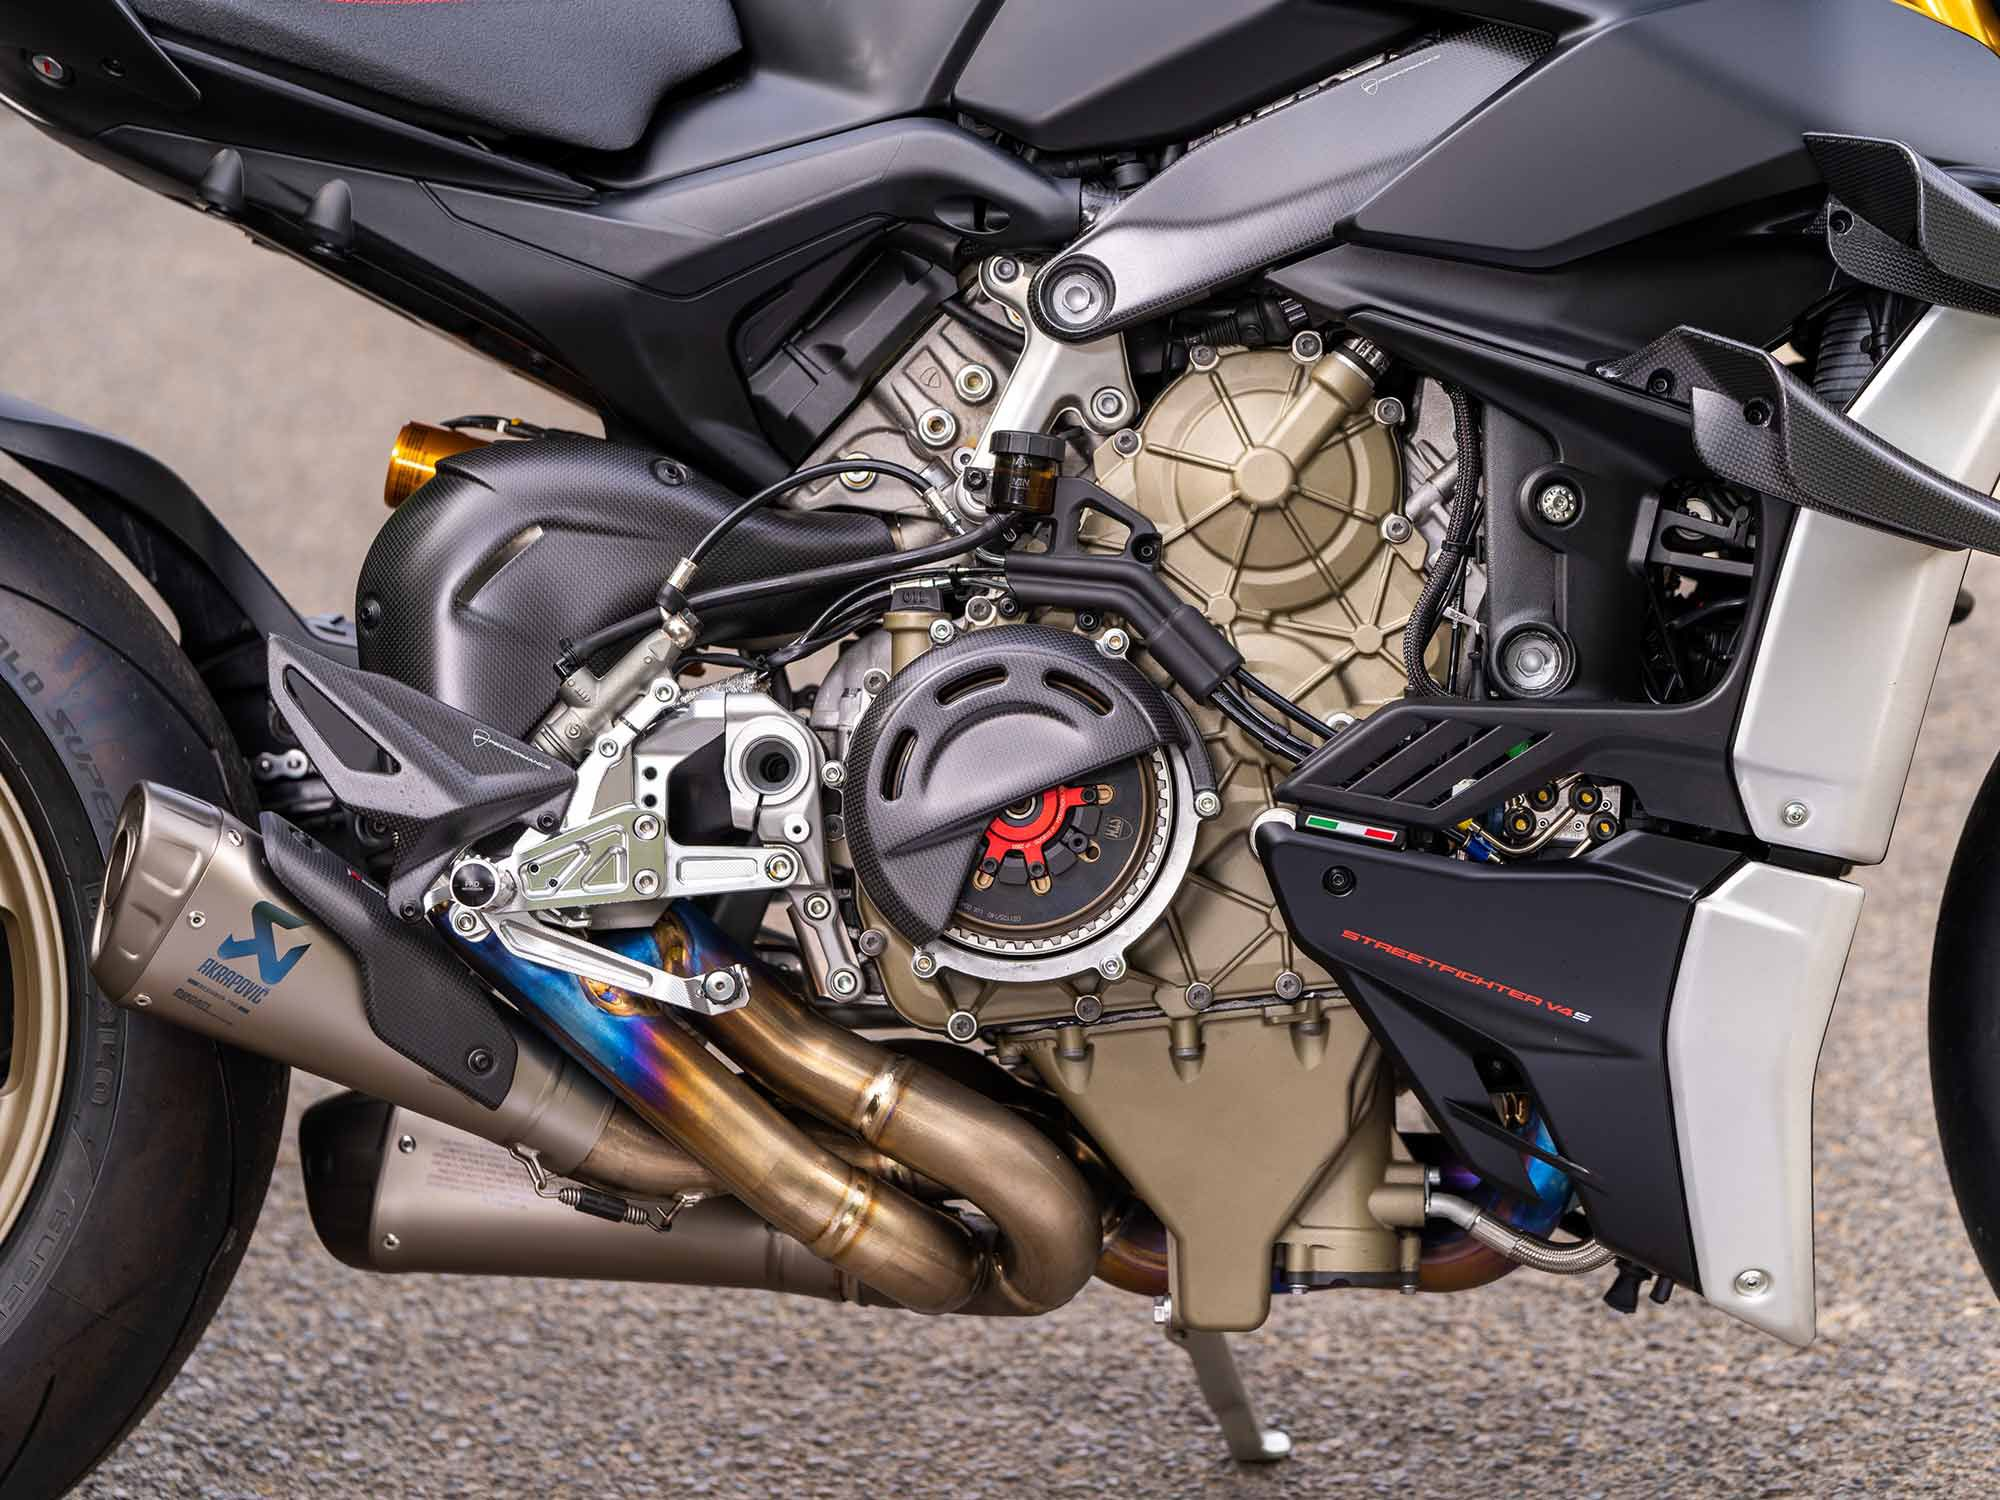 The dry clutch conversion kit is an absolute must-have. If you're an old school Ducati superbike guy or gal, you need this setup.